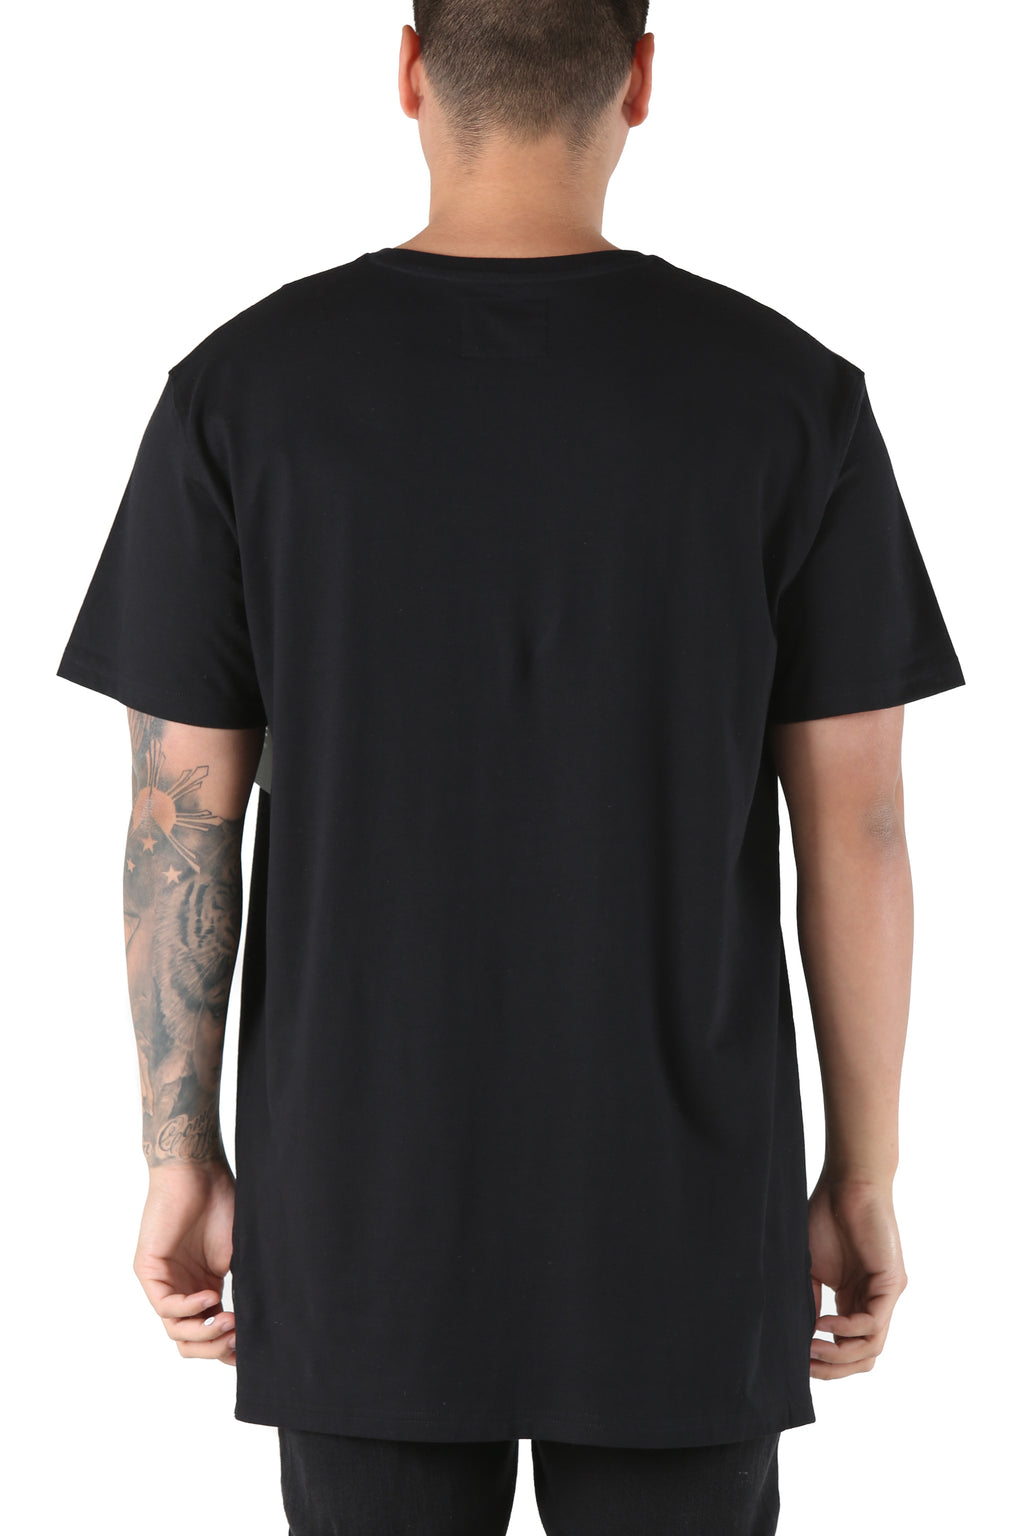 Carré Bande Incline Divise Tee Black